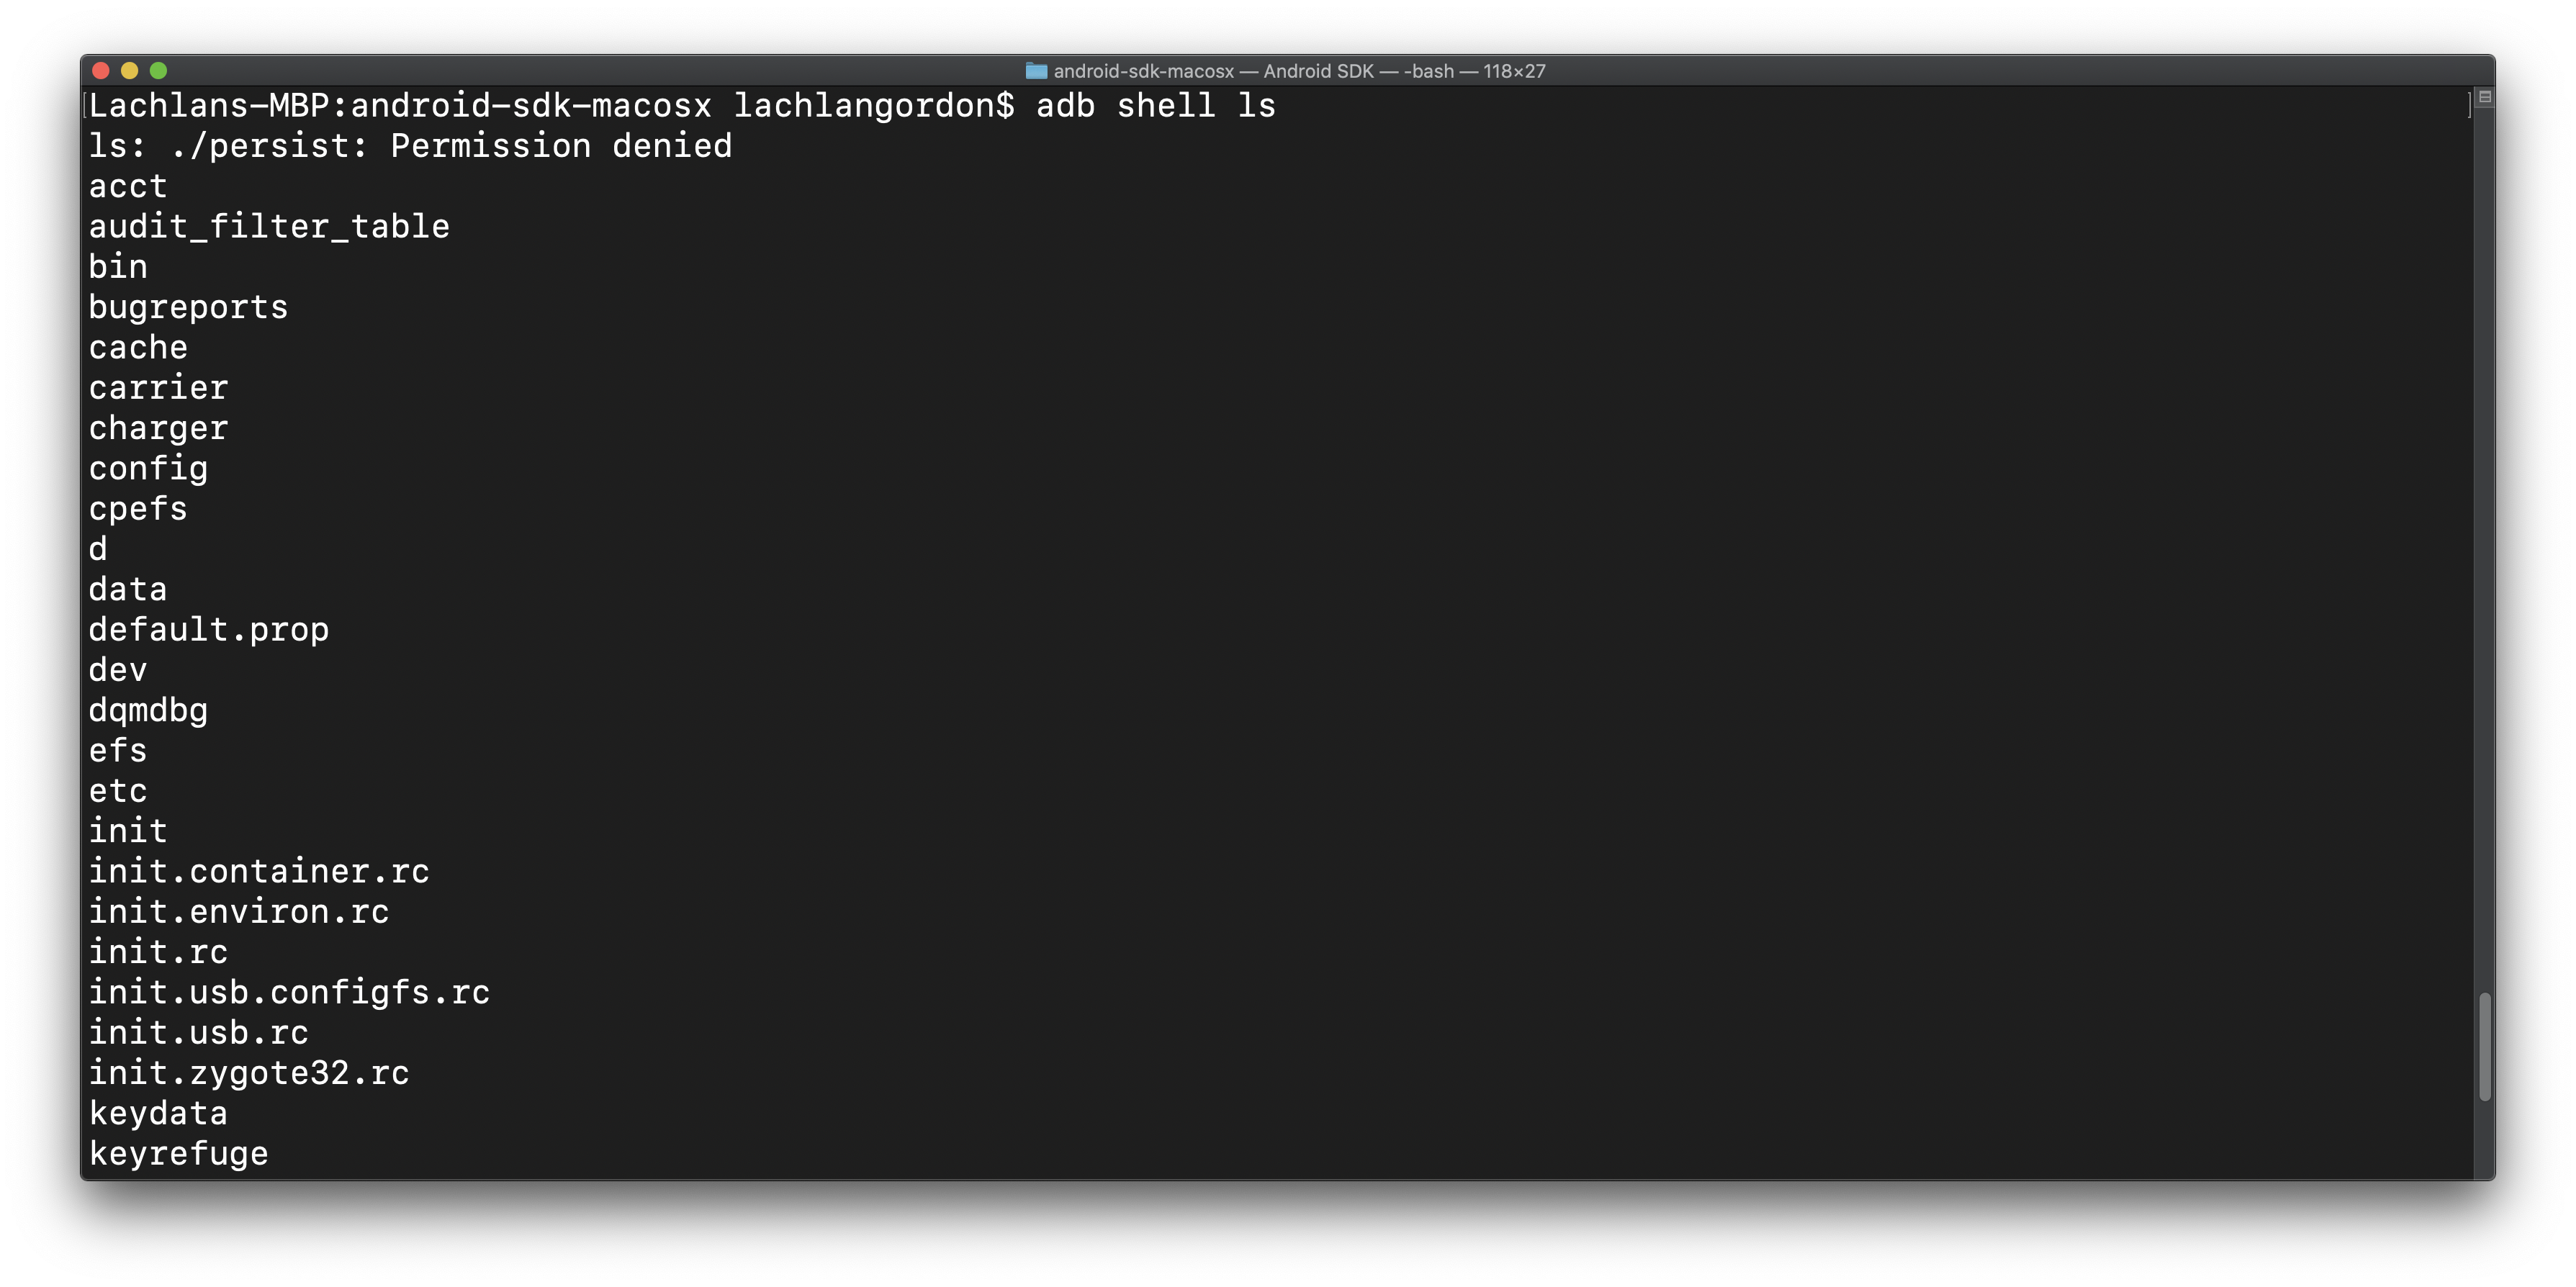 using shell to run the ls command